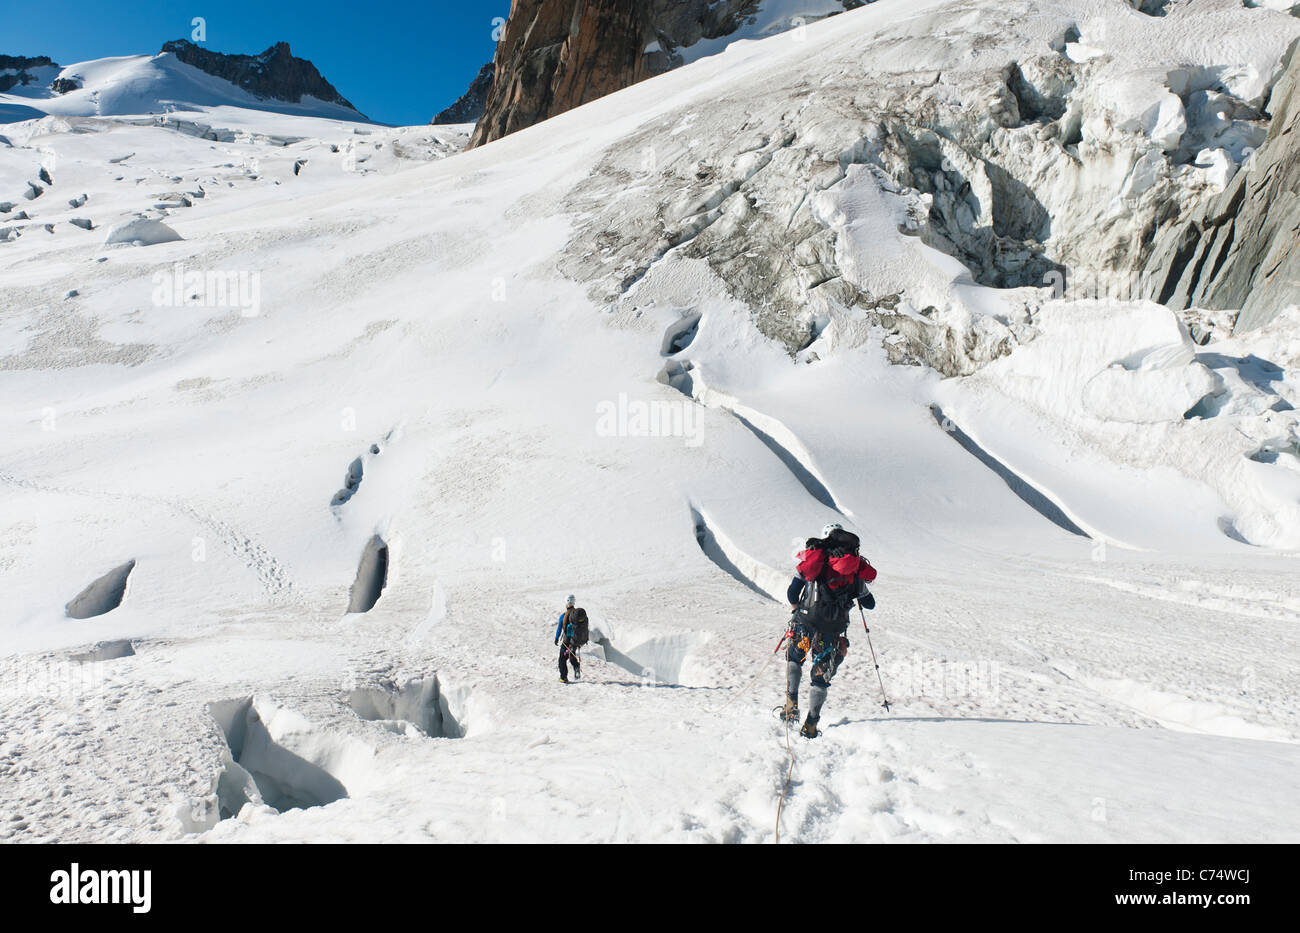 Climbers walking among crevasses on the Vallee Blanche glacier in Chamonix, France Stock Photo